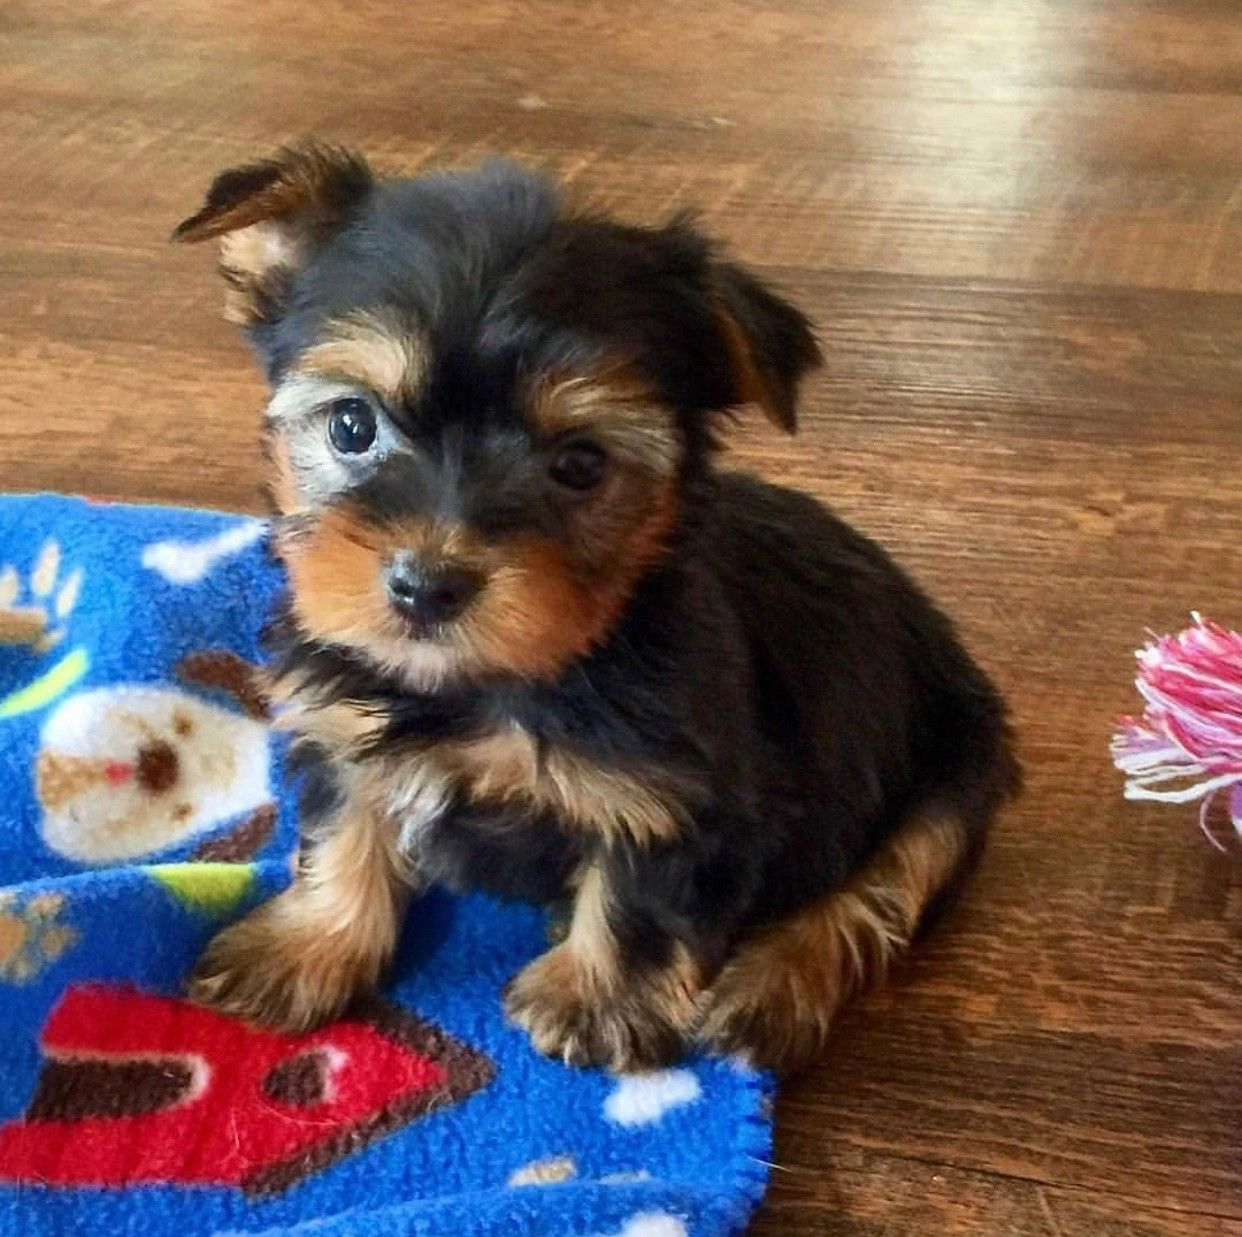 Yorkshire Terrier Puppies For Sale North Carolina 73 North Albemarle Nc In 2020 Yorkshire Terrier Puppies Terrier Puppies Yorkshire Terrier